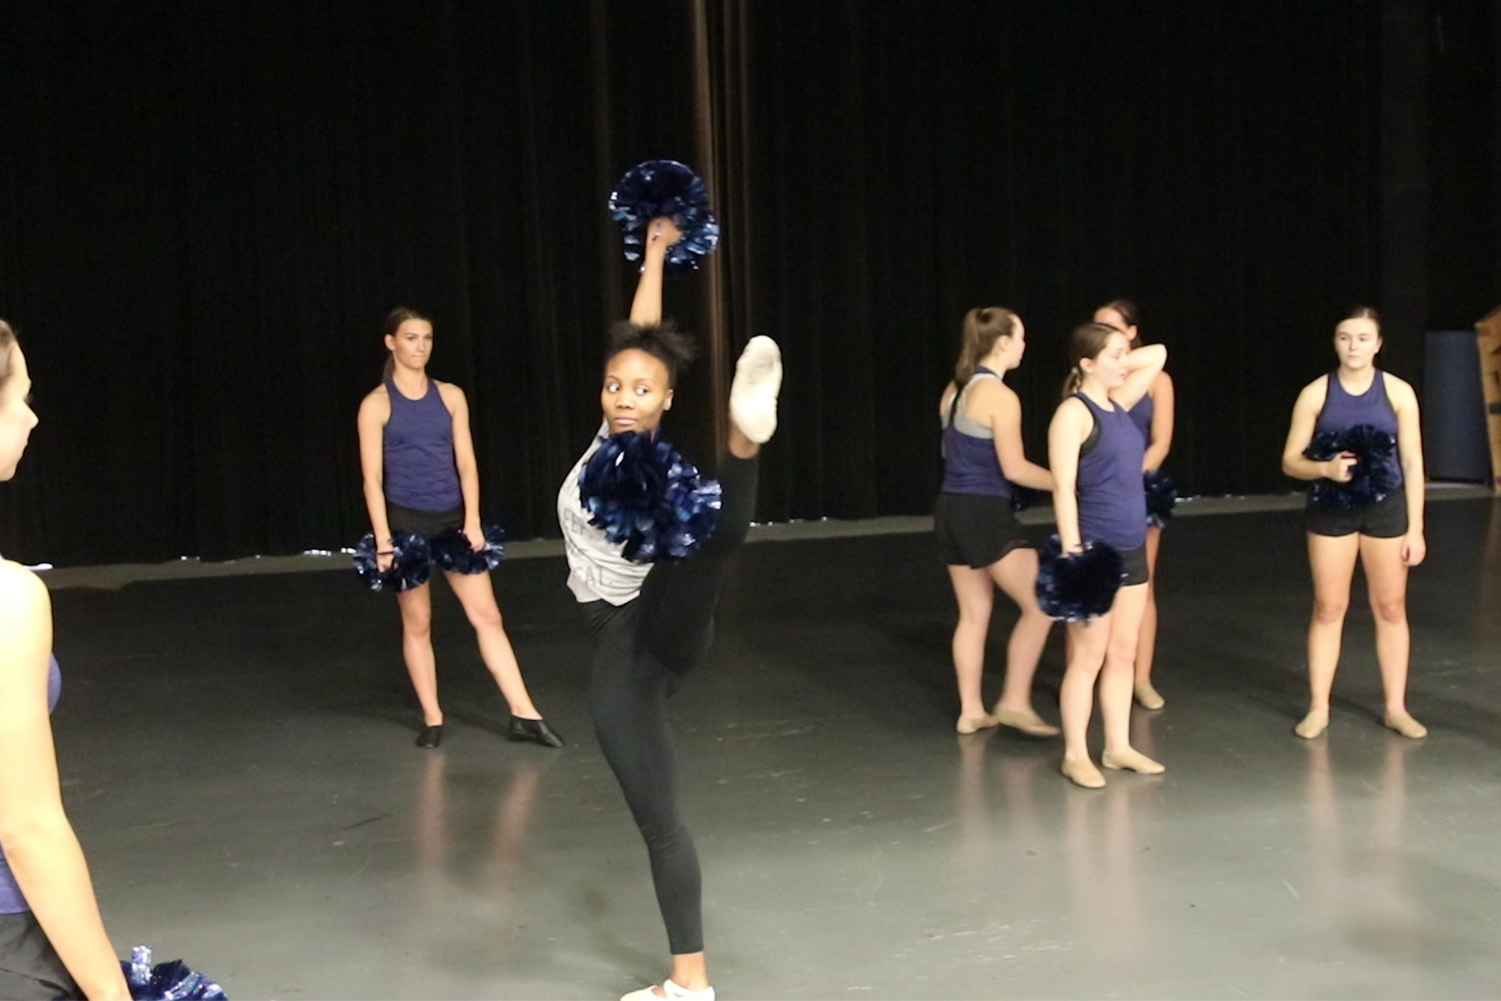 Sam Hall, sophomore, performs a battement with poms. Hall is a ballet dancer who spent a day with the MHS poms team to experience a style of dance foreign to her.